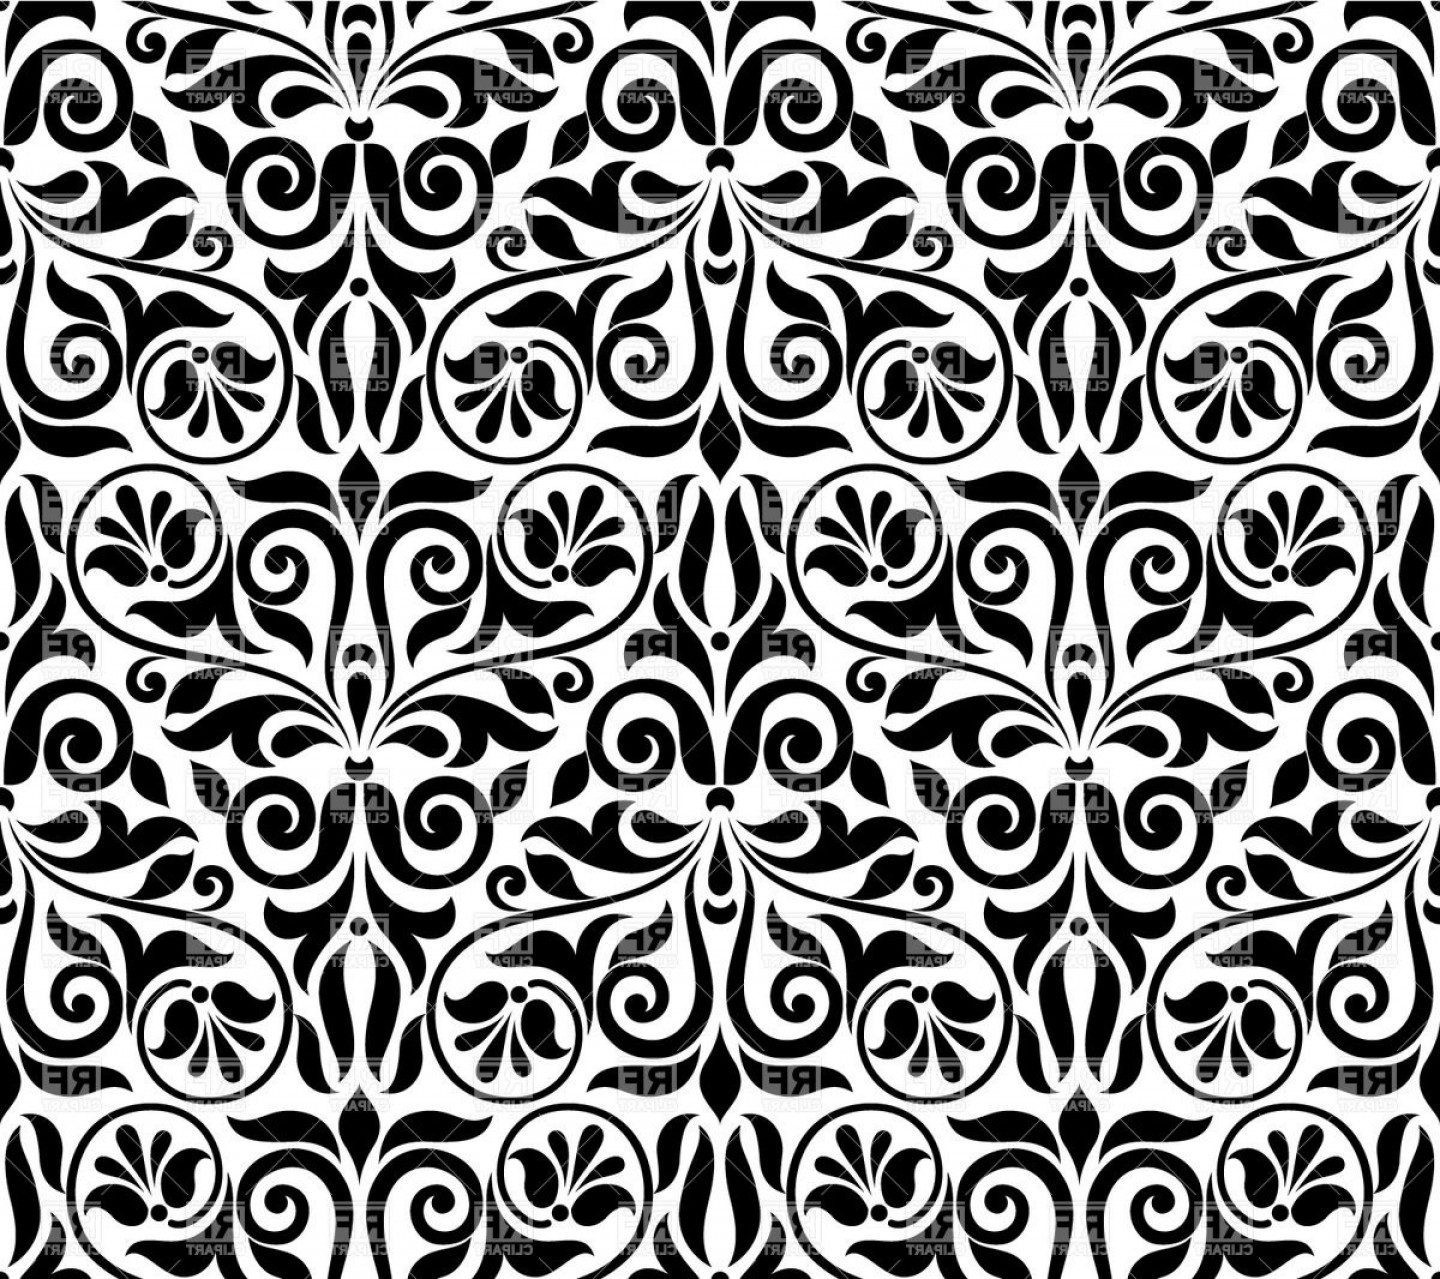 Damask Background Vector Art: Seamless Damask Pattern Ornamental Classic Wallpaper Vector Clipart